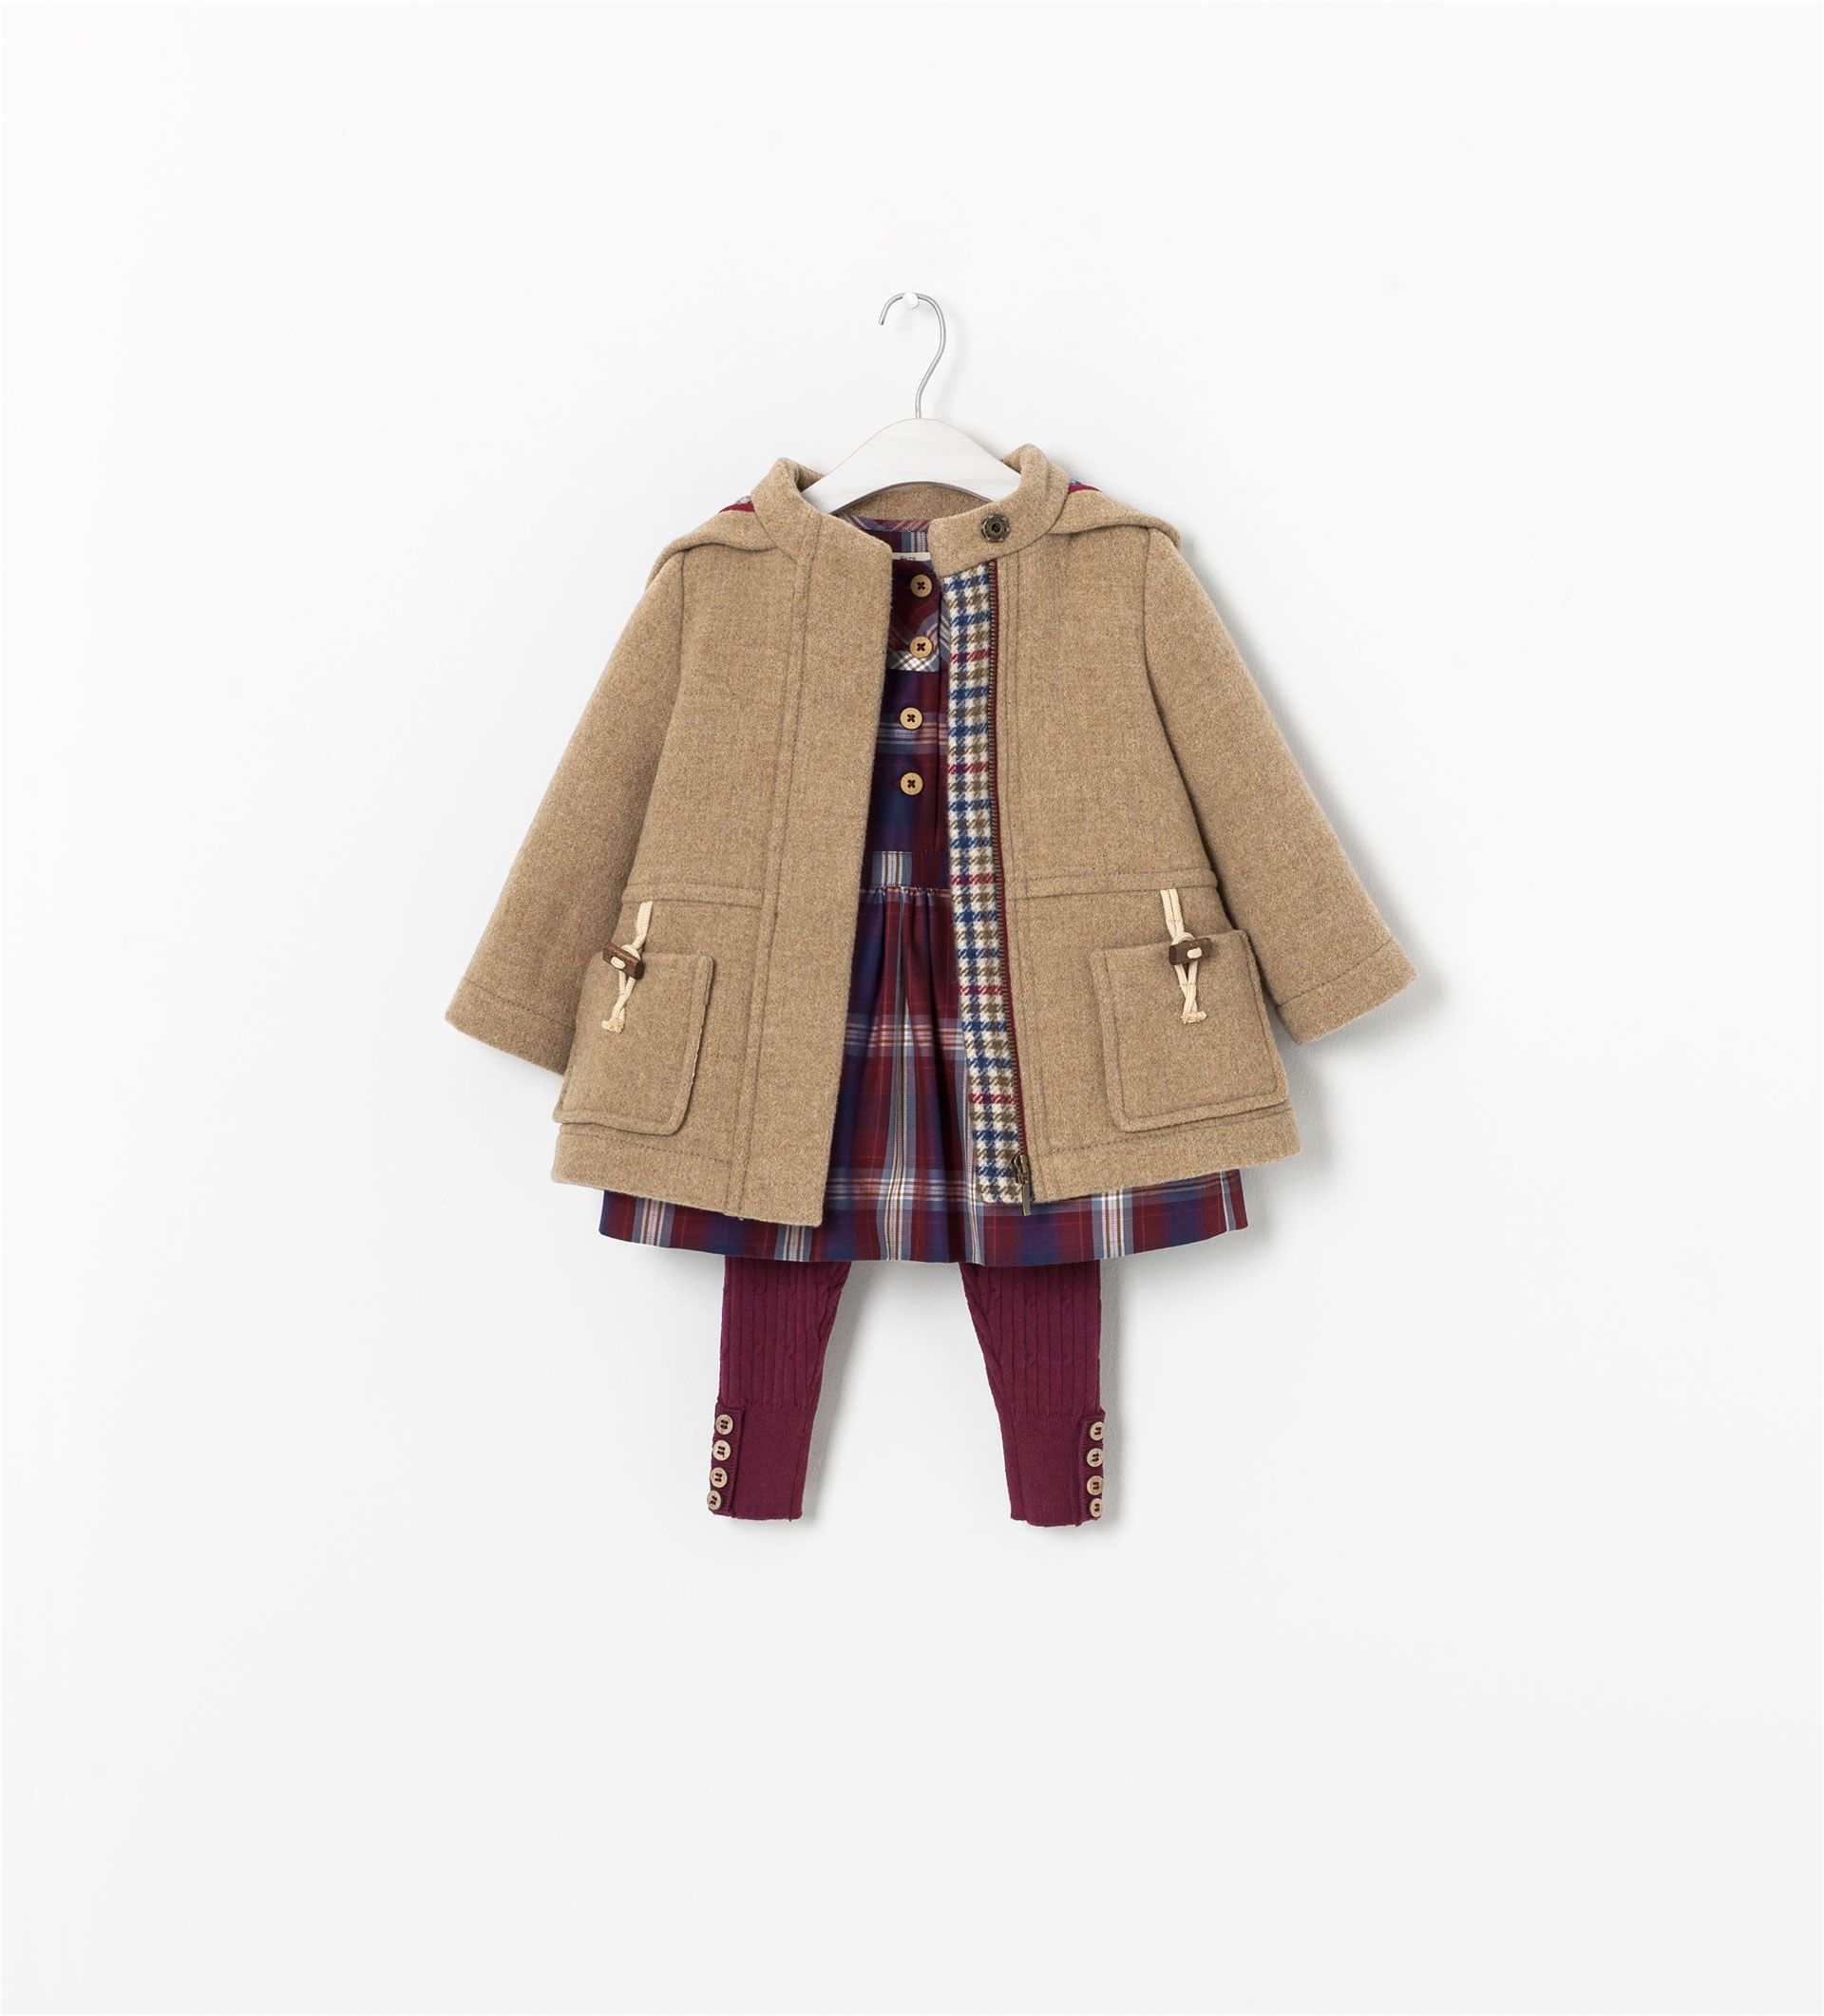 Image 4 of CHECKED DRESS from Zara | Kids outfits, Kids ...